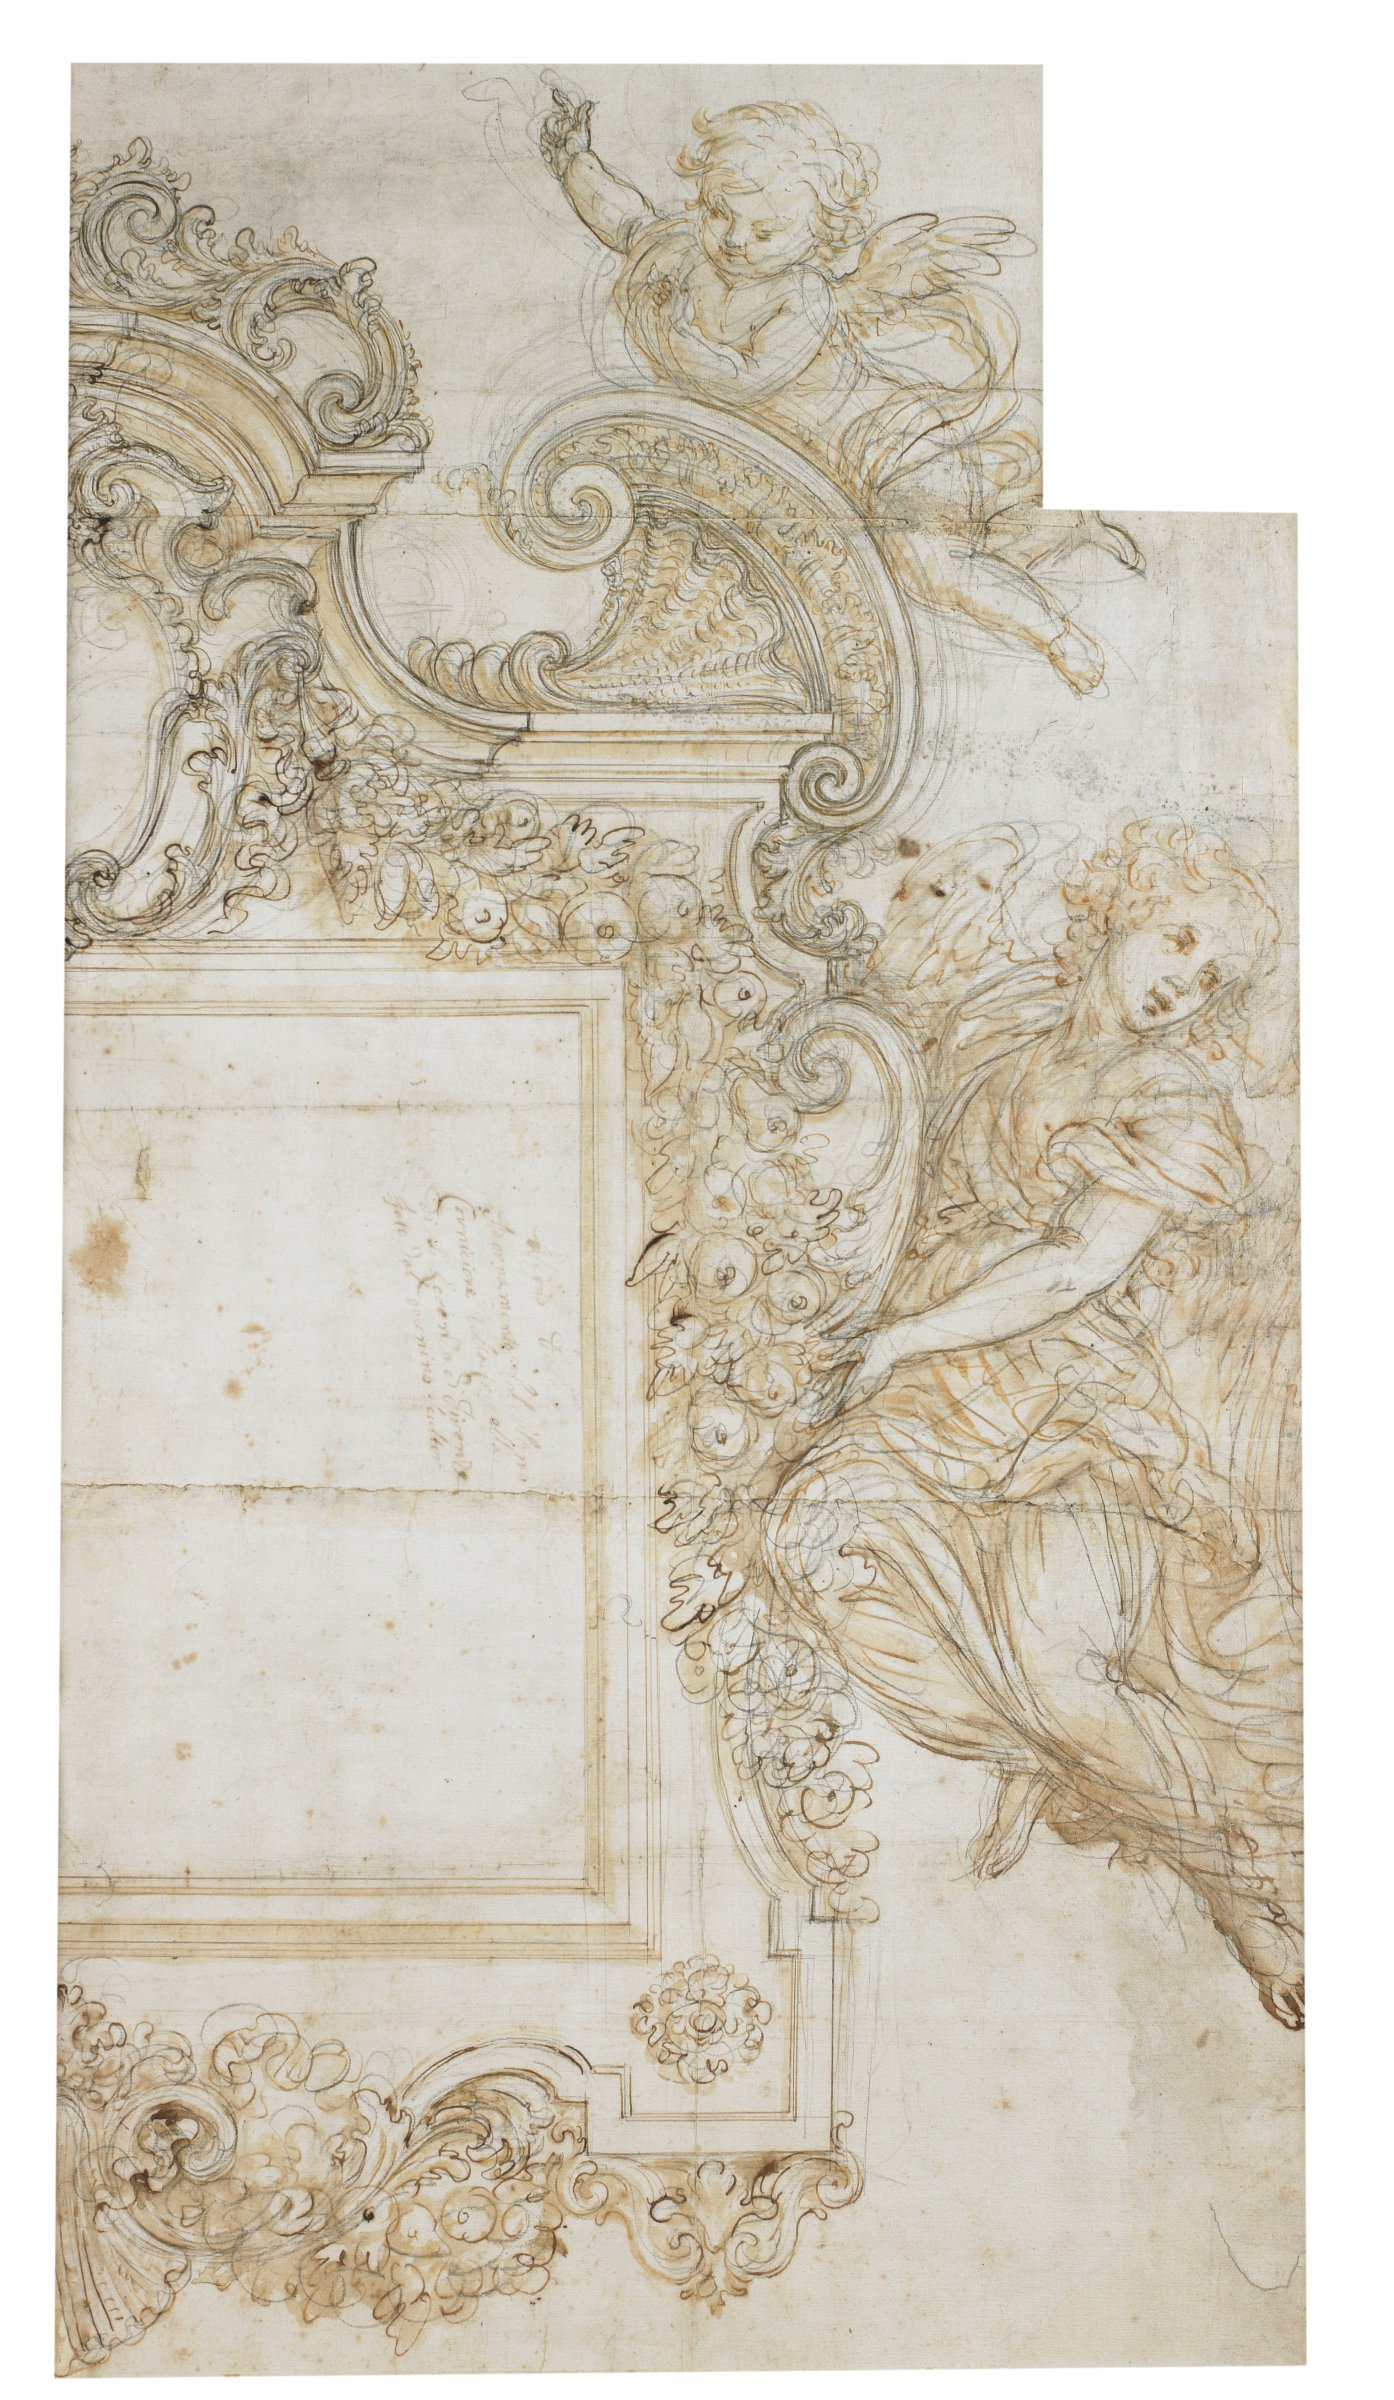 Study for a Frame, Giovanni Battista Foggini, pen and brown ink, brush and brown wash, over black chalk, on laid paper